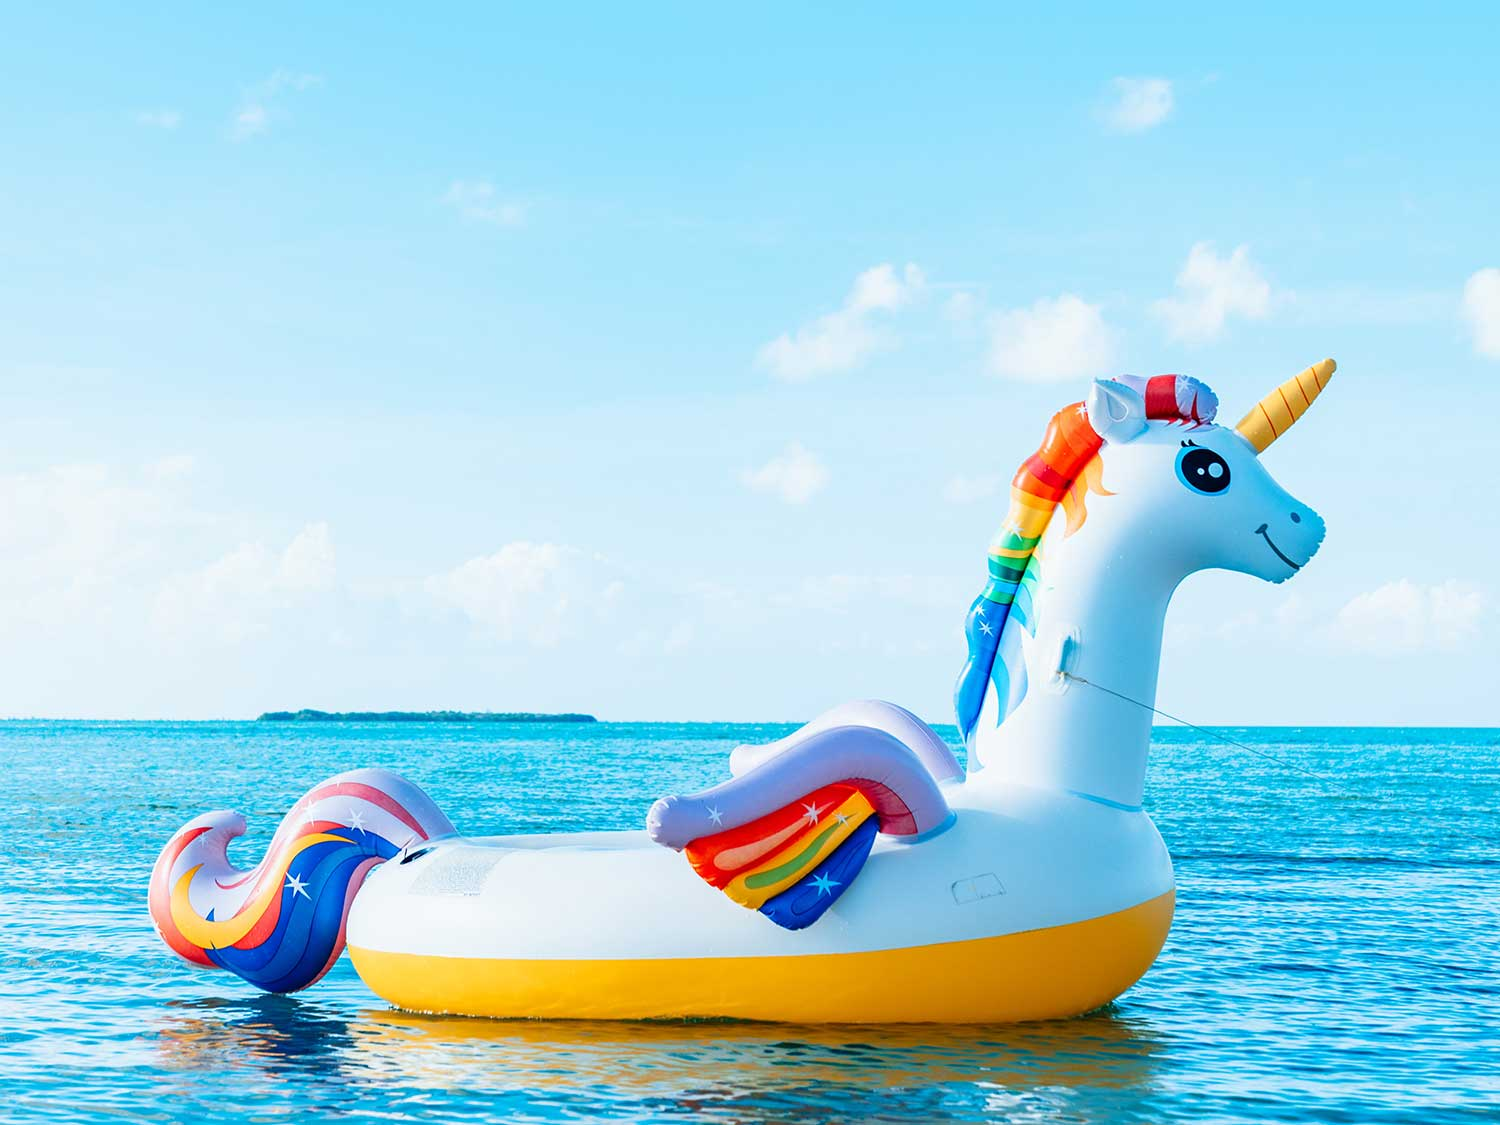 Unicorn floating floating in ocean.